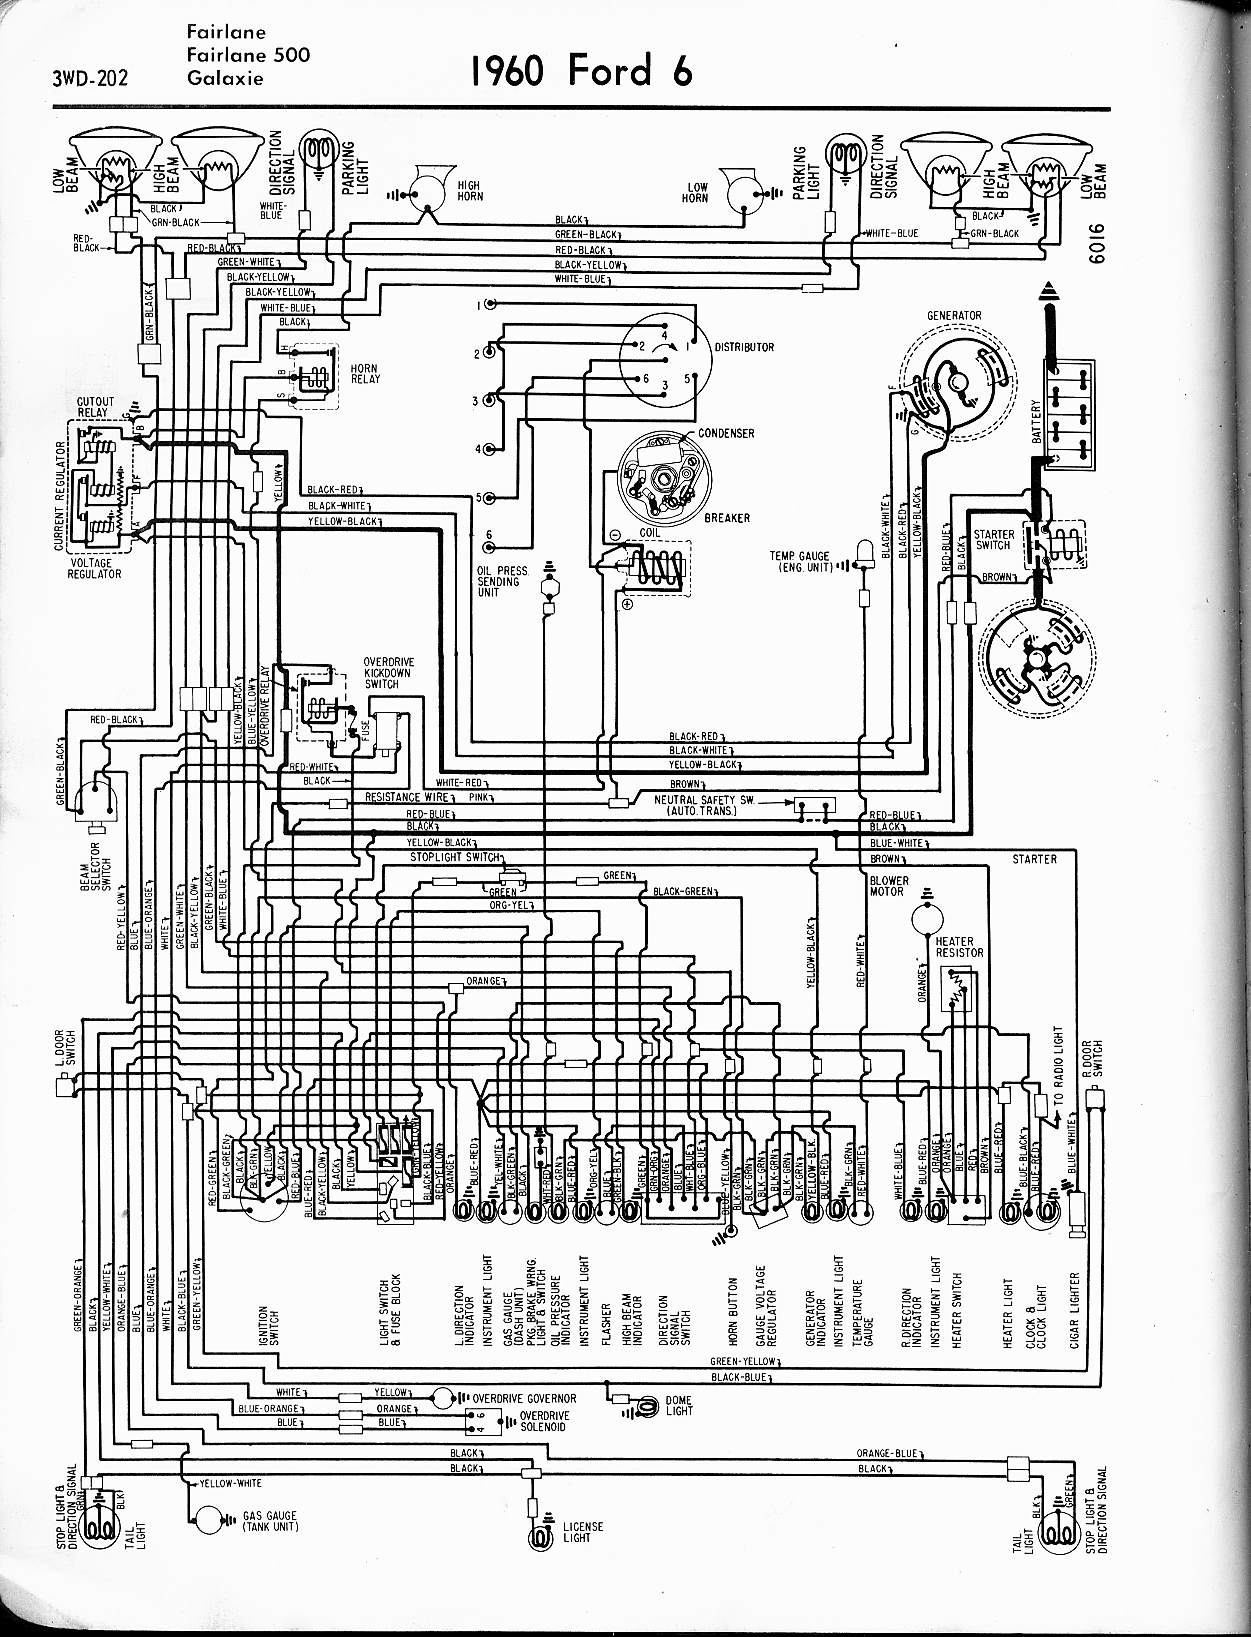 Ford Electrical Wiring Diagrams Detailed Schematic Schematics 57 65 Falcon 1960 6 Cyl Fairlane 500